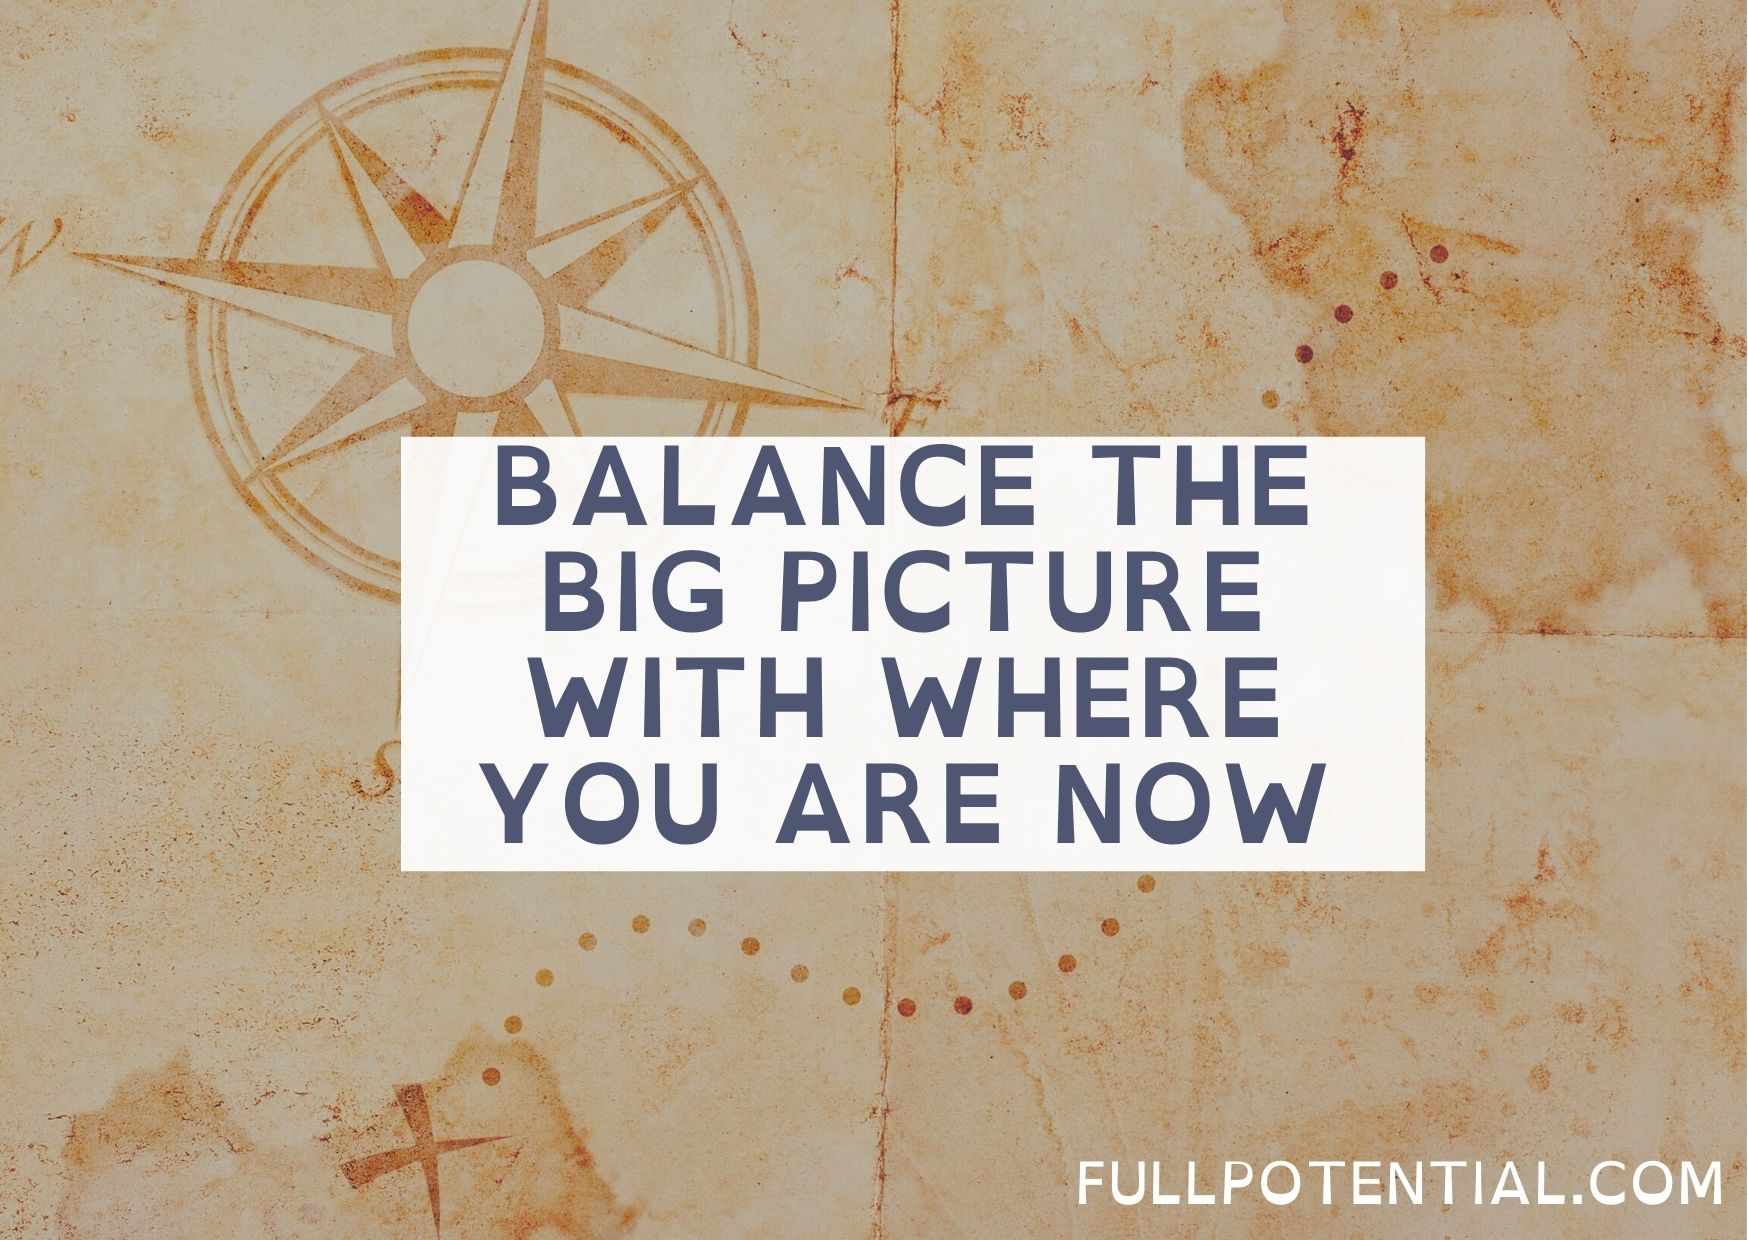 Big picture and vision with where you are now